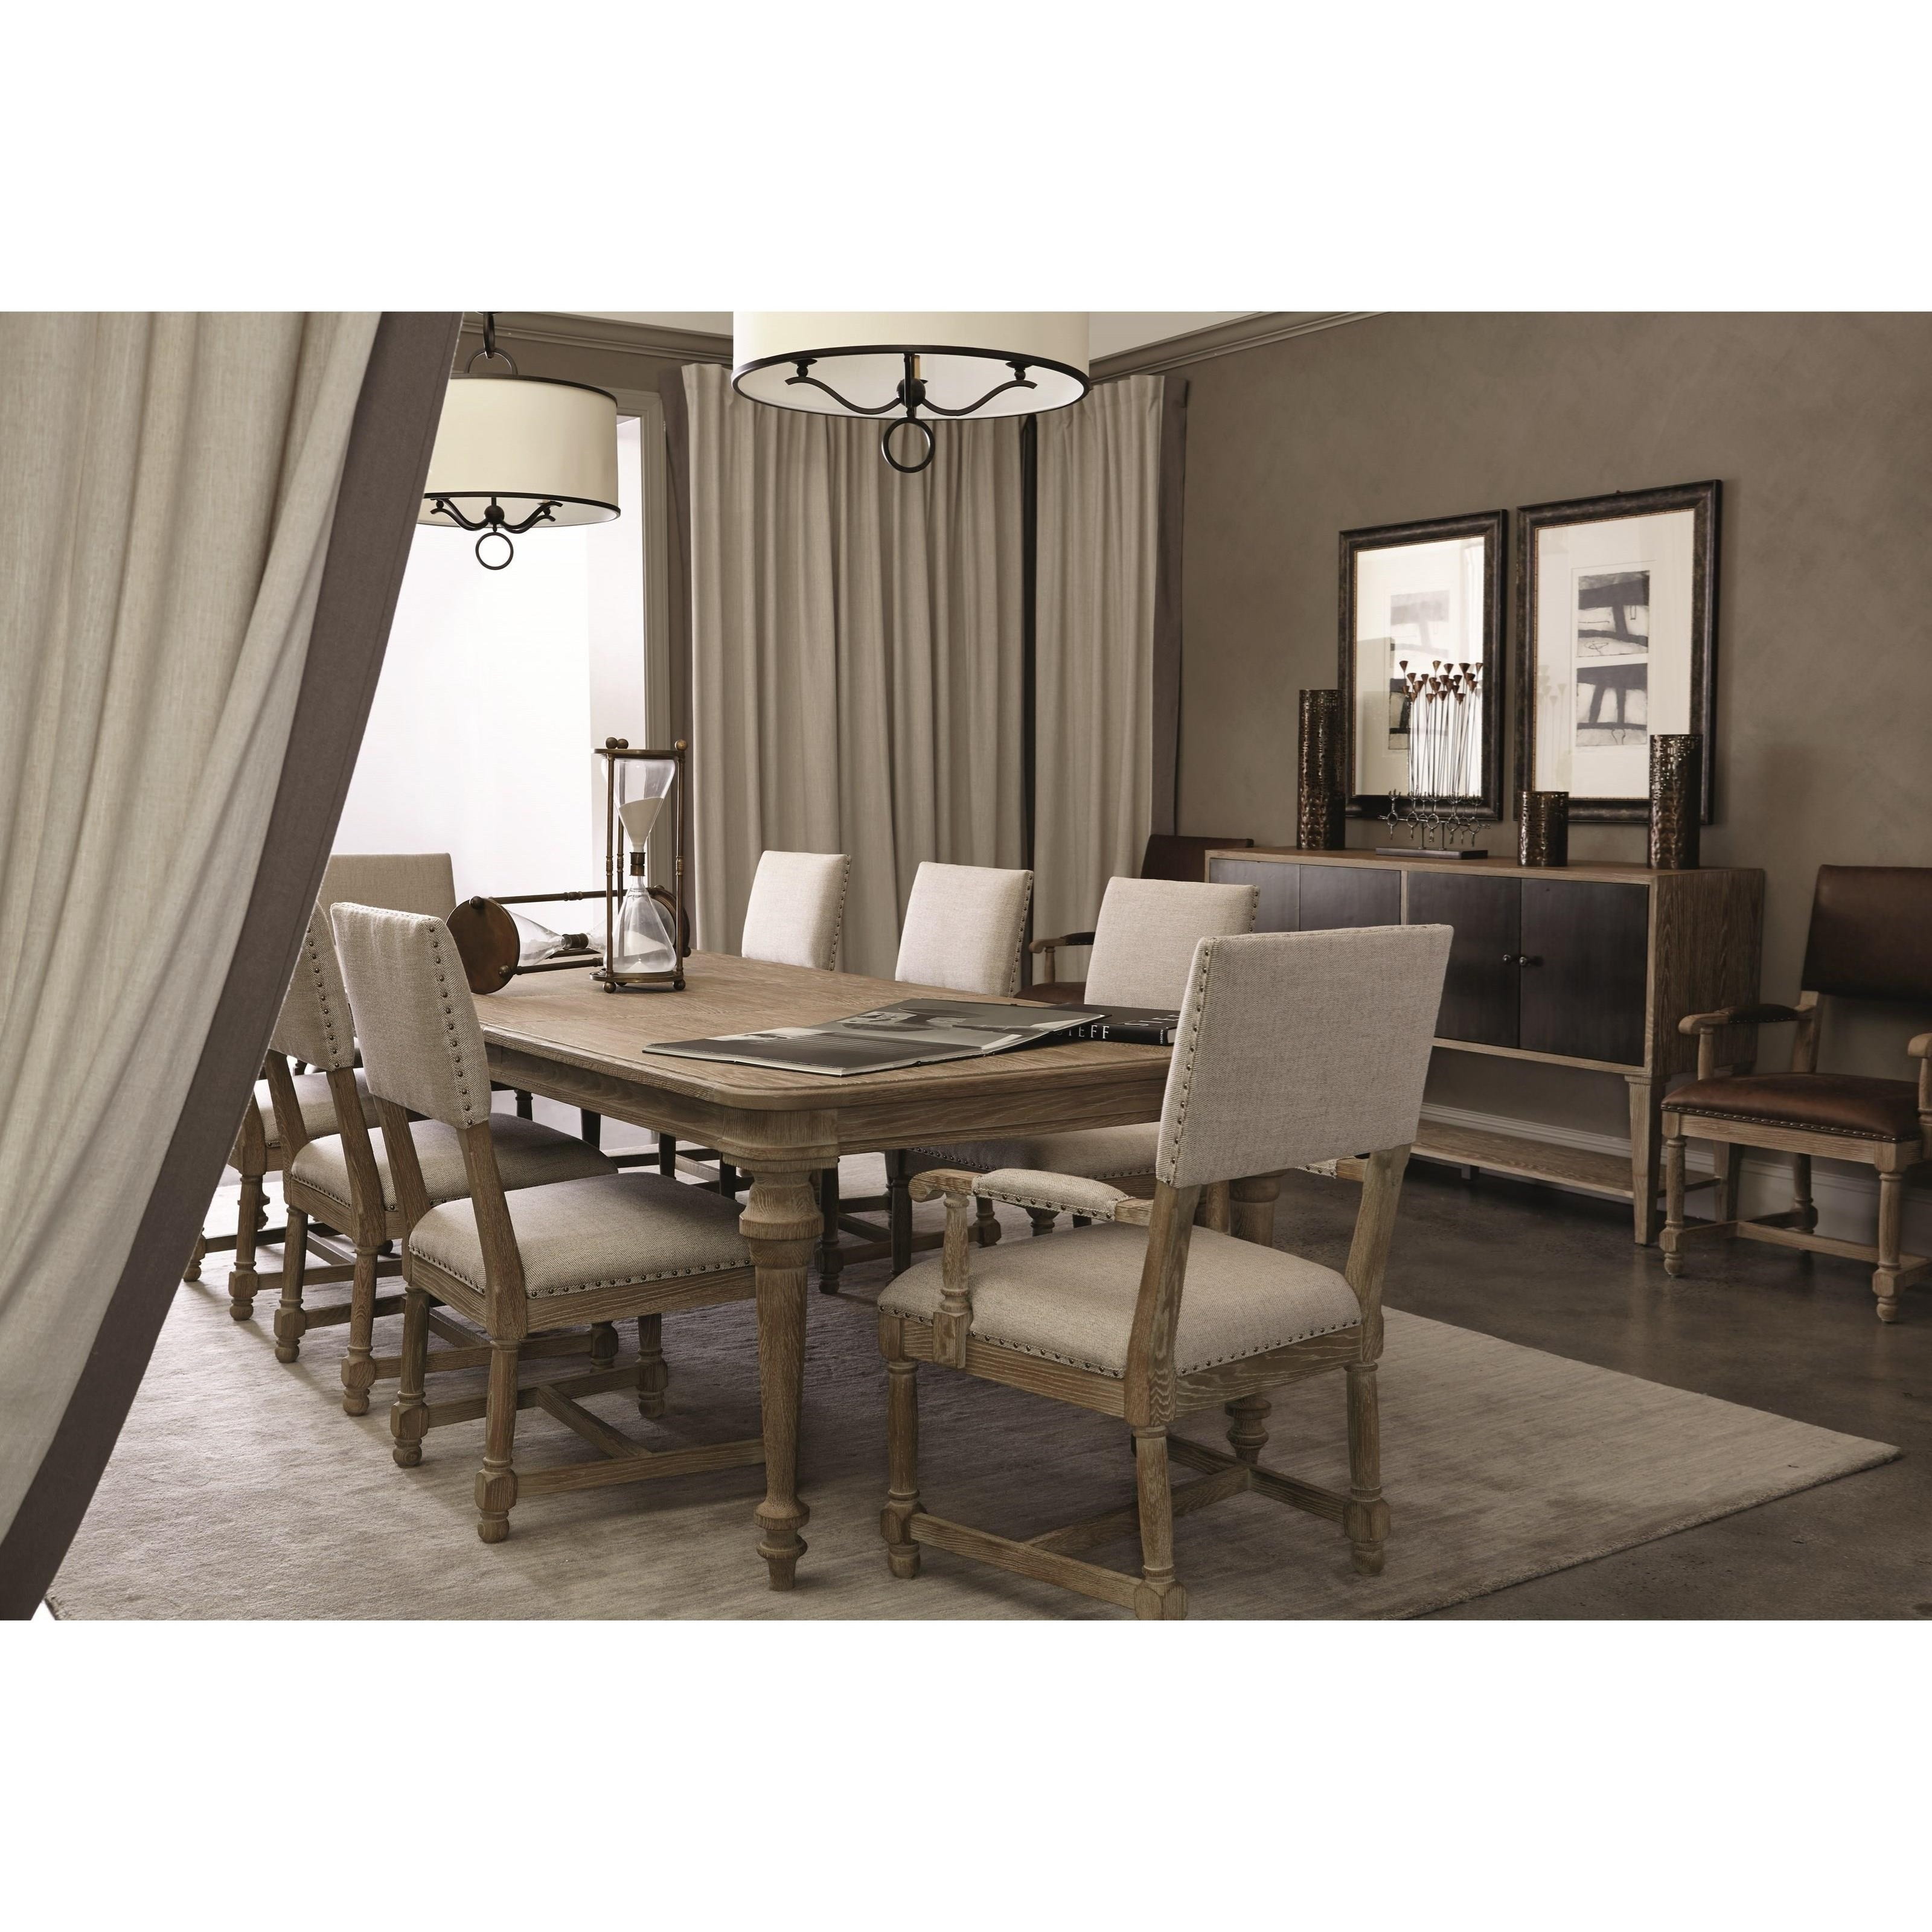 Bernhardt antiquarian 365 222 dining table with 2 leaves for Furniture 365 oldham